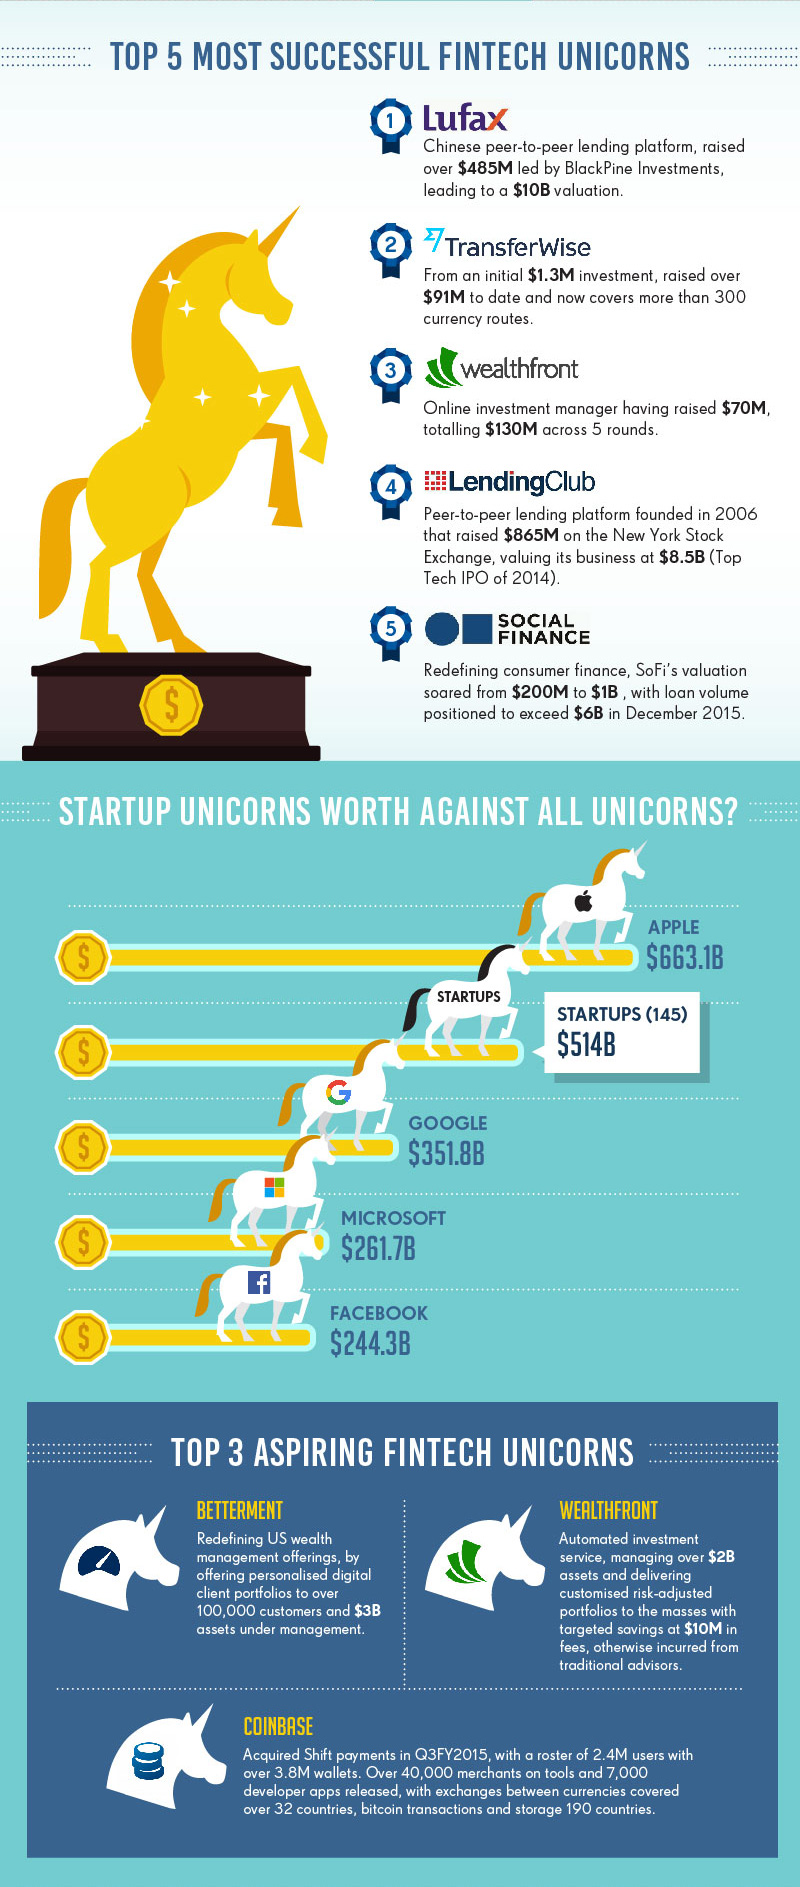 Top 5 most successful fintech unicorns